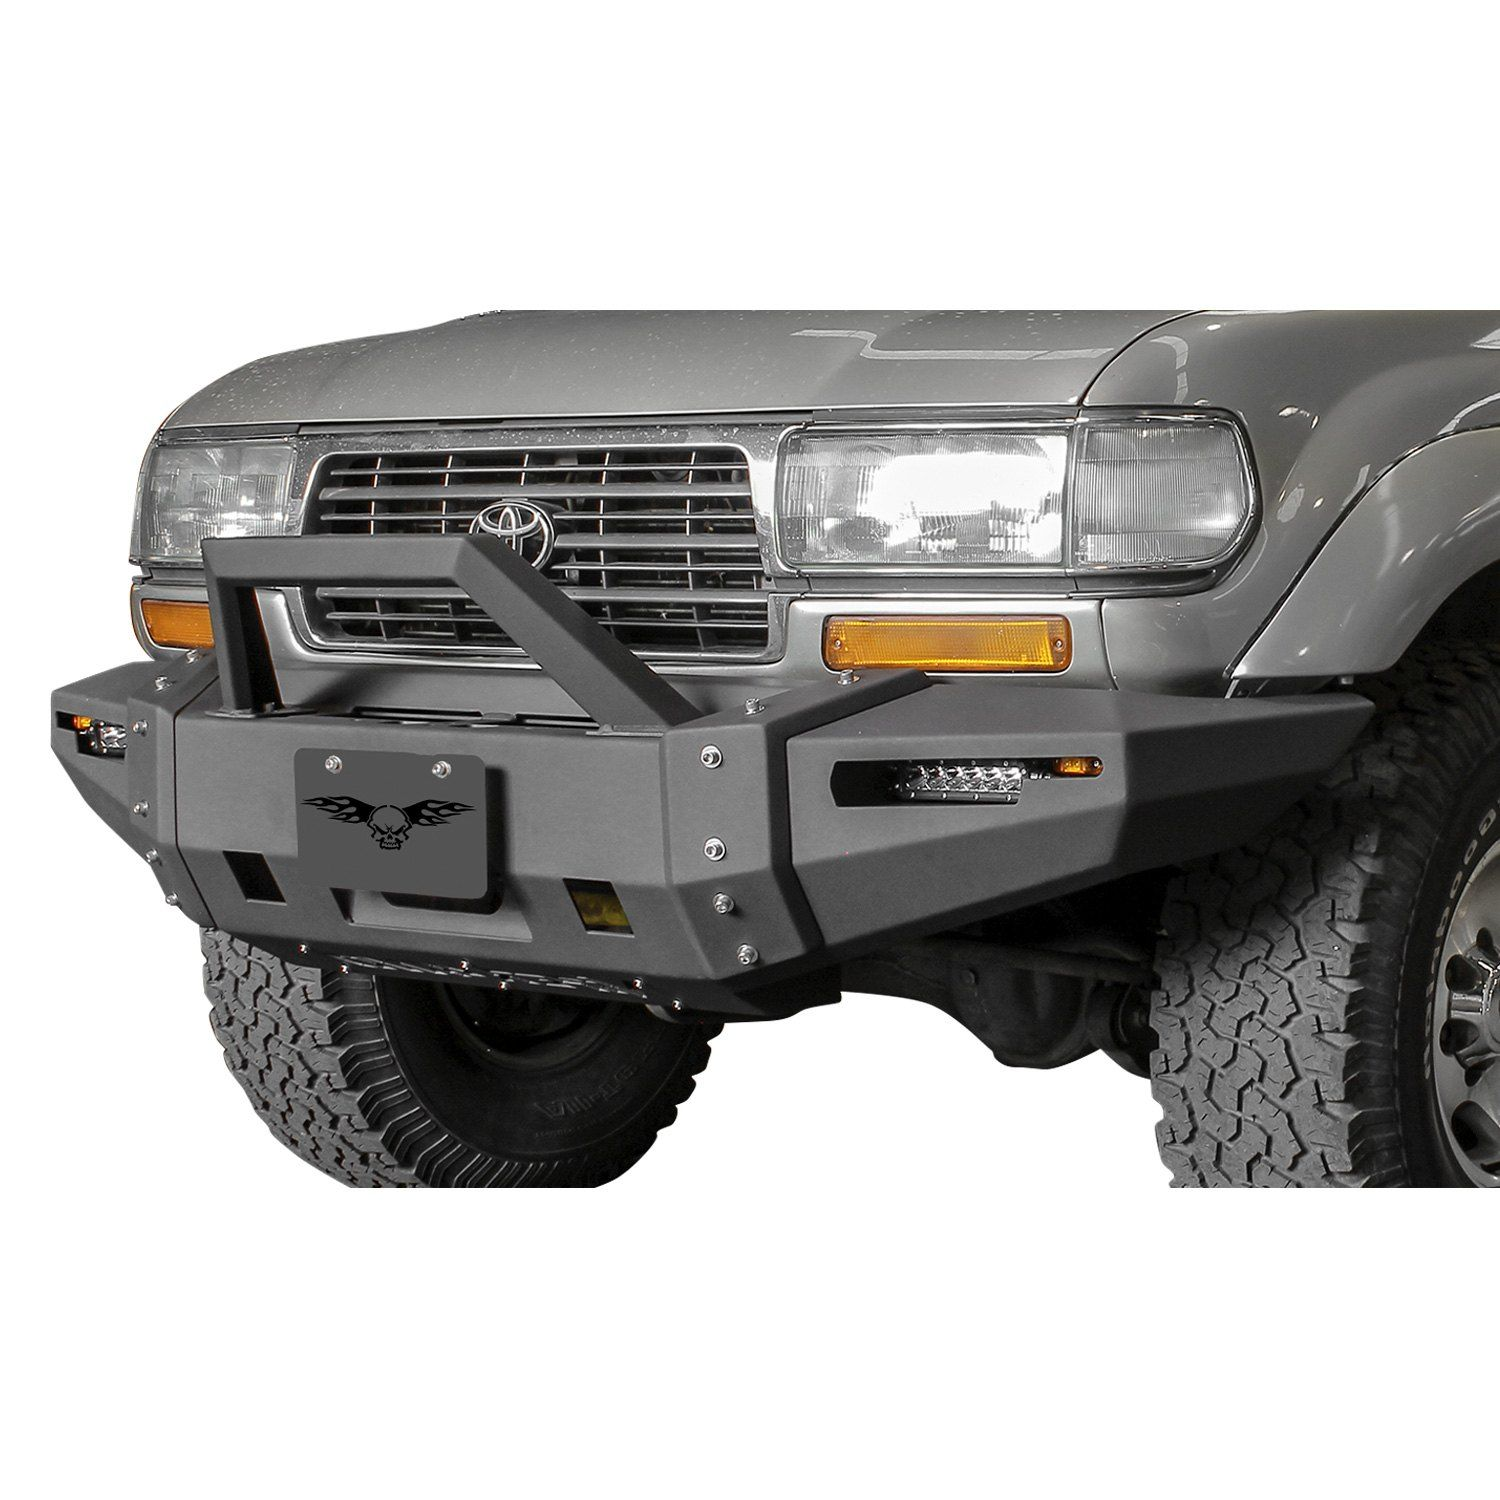 Vpr 4x4 Ultima Front Winch Bumper Accesorios 4x4 4x4